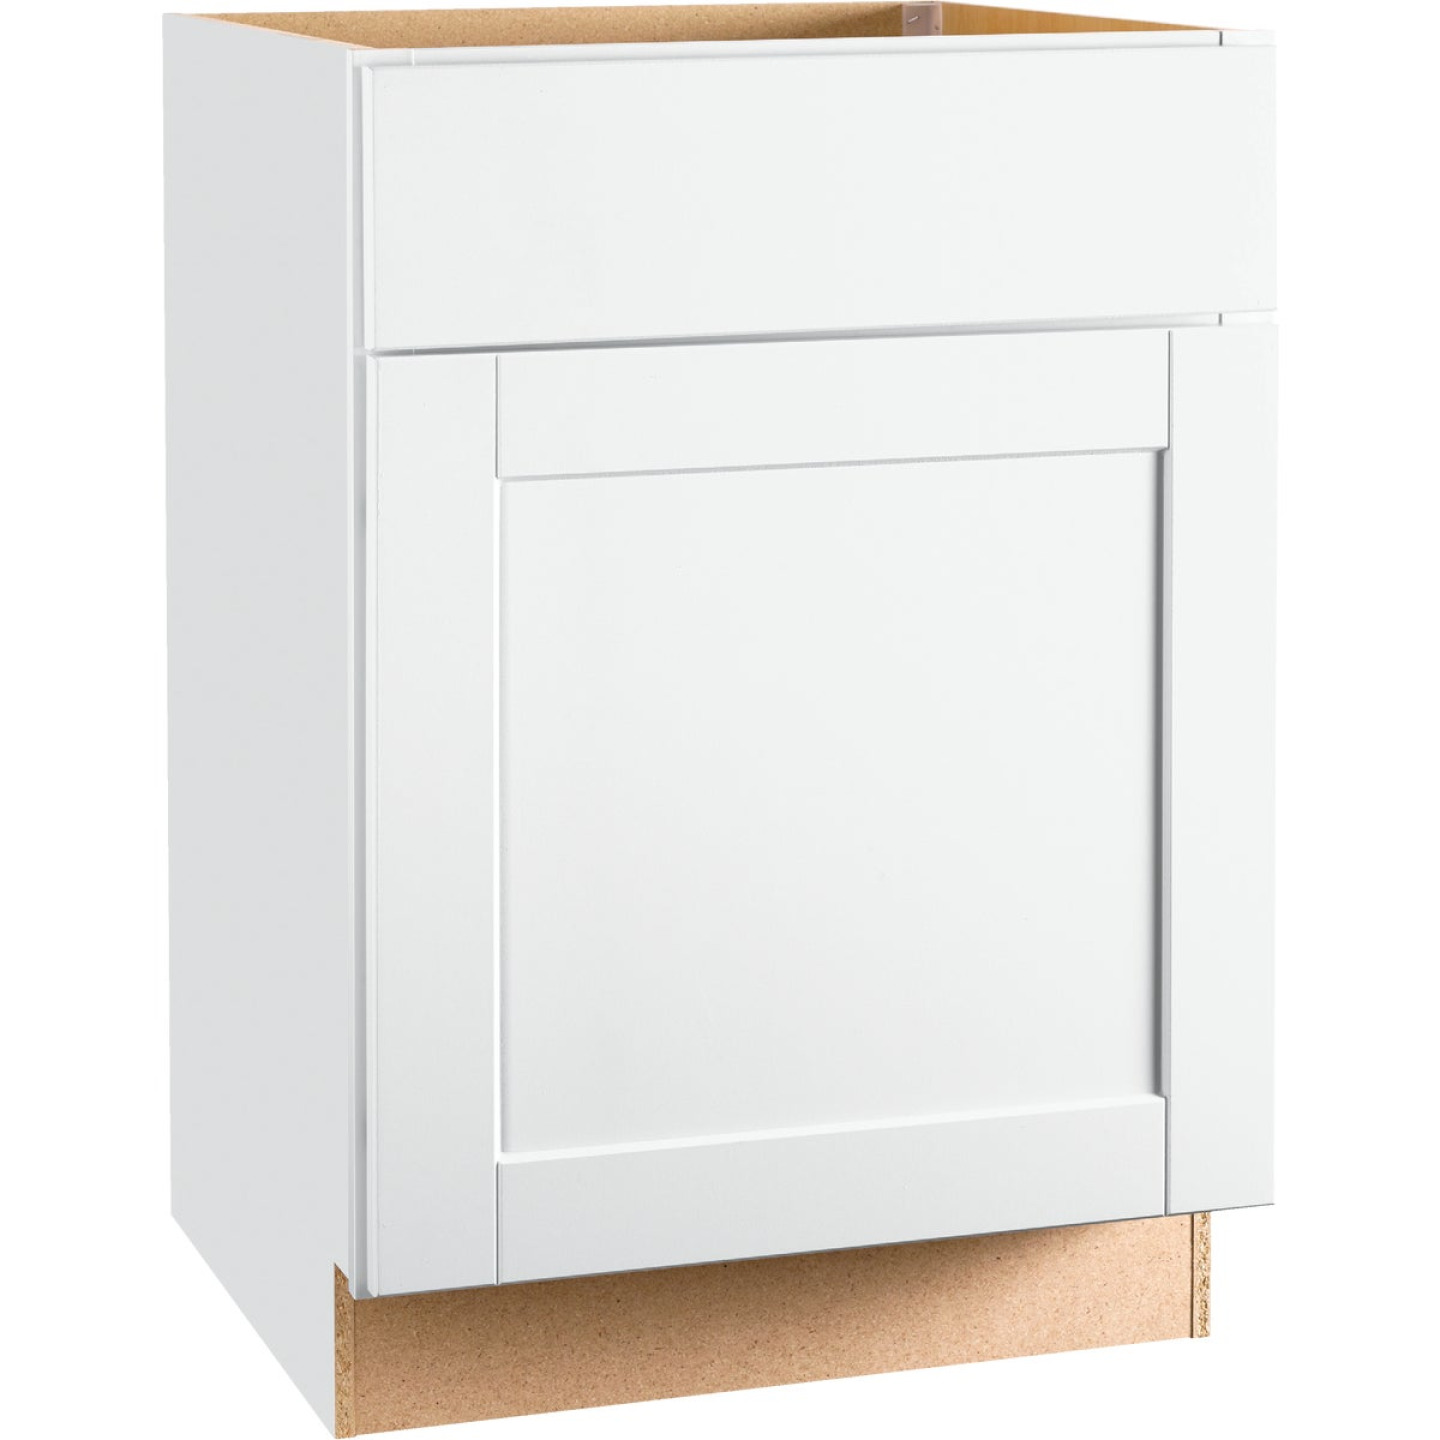 Continental Cabinets Andover Shaker 24 In. W x 34 In. H x 24 In. D White Thermofoil Base Kitchen Cabinet Image 1